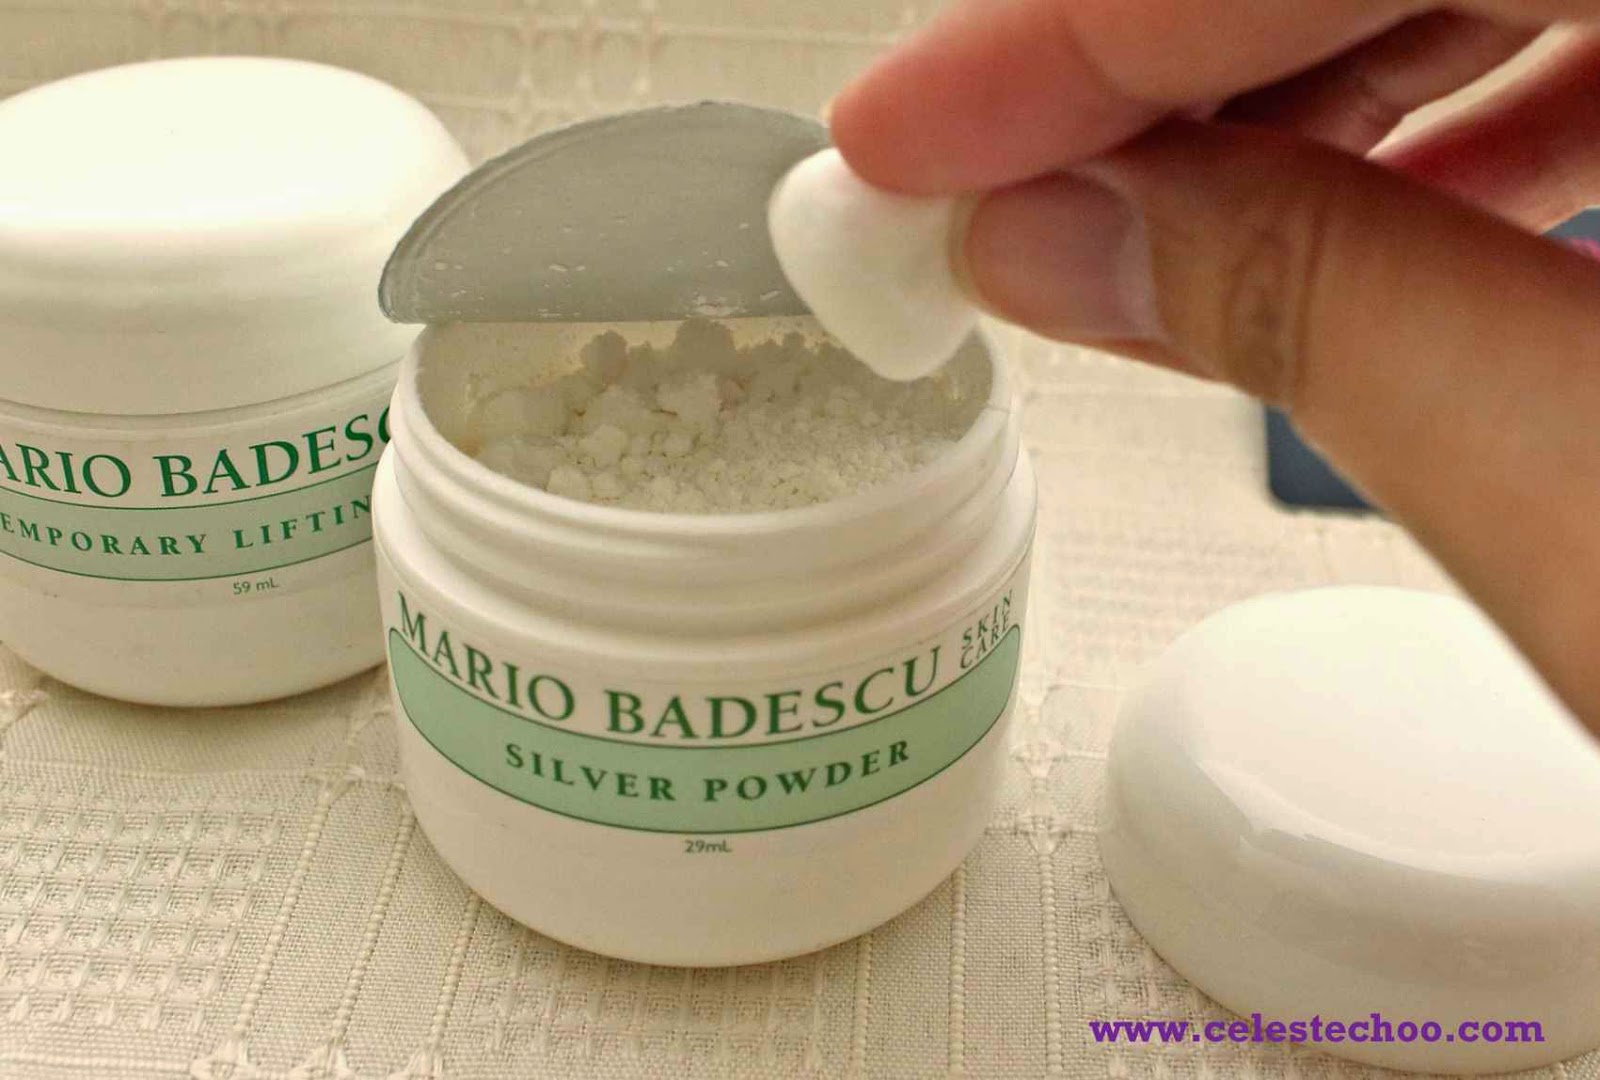 mario-badescu-beauty-and-skincare-silver-powder-review